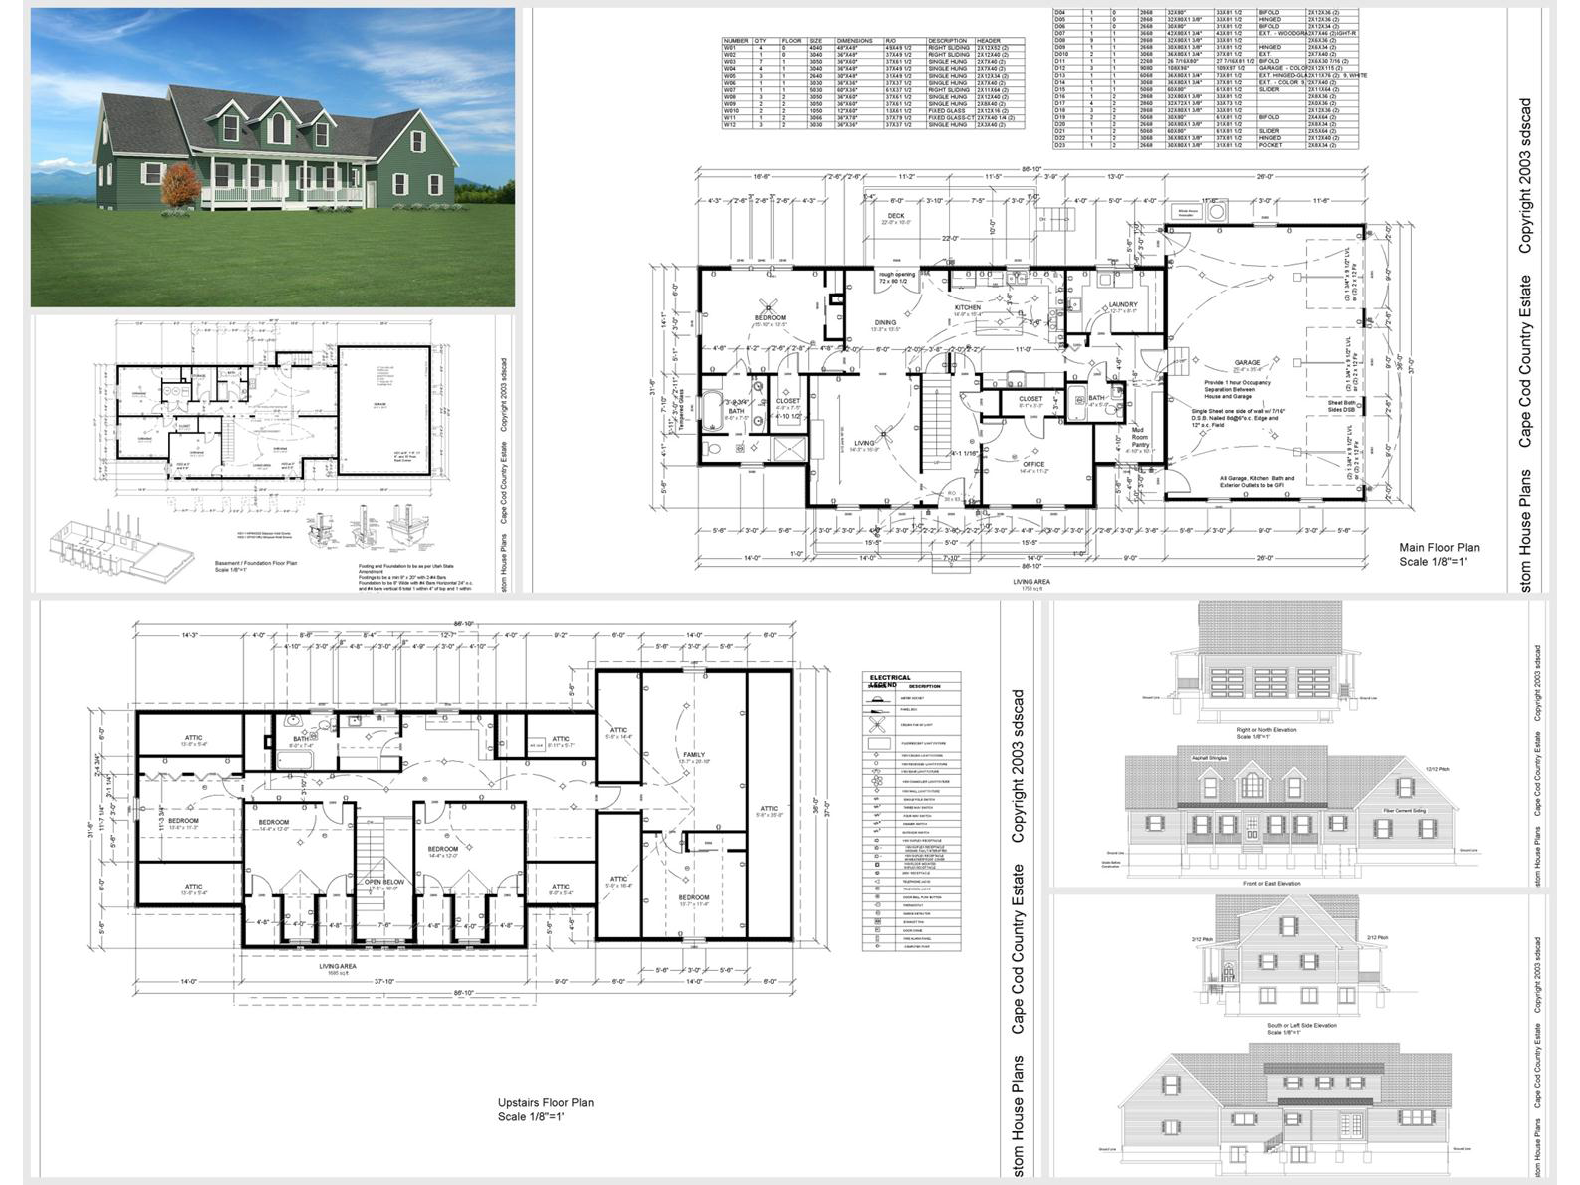 100 house plans catalog page 011 9 plans for House plan catalogs free